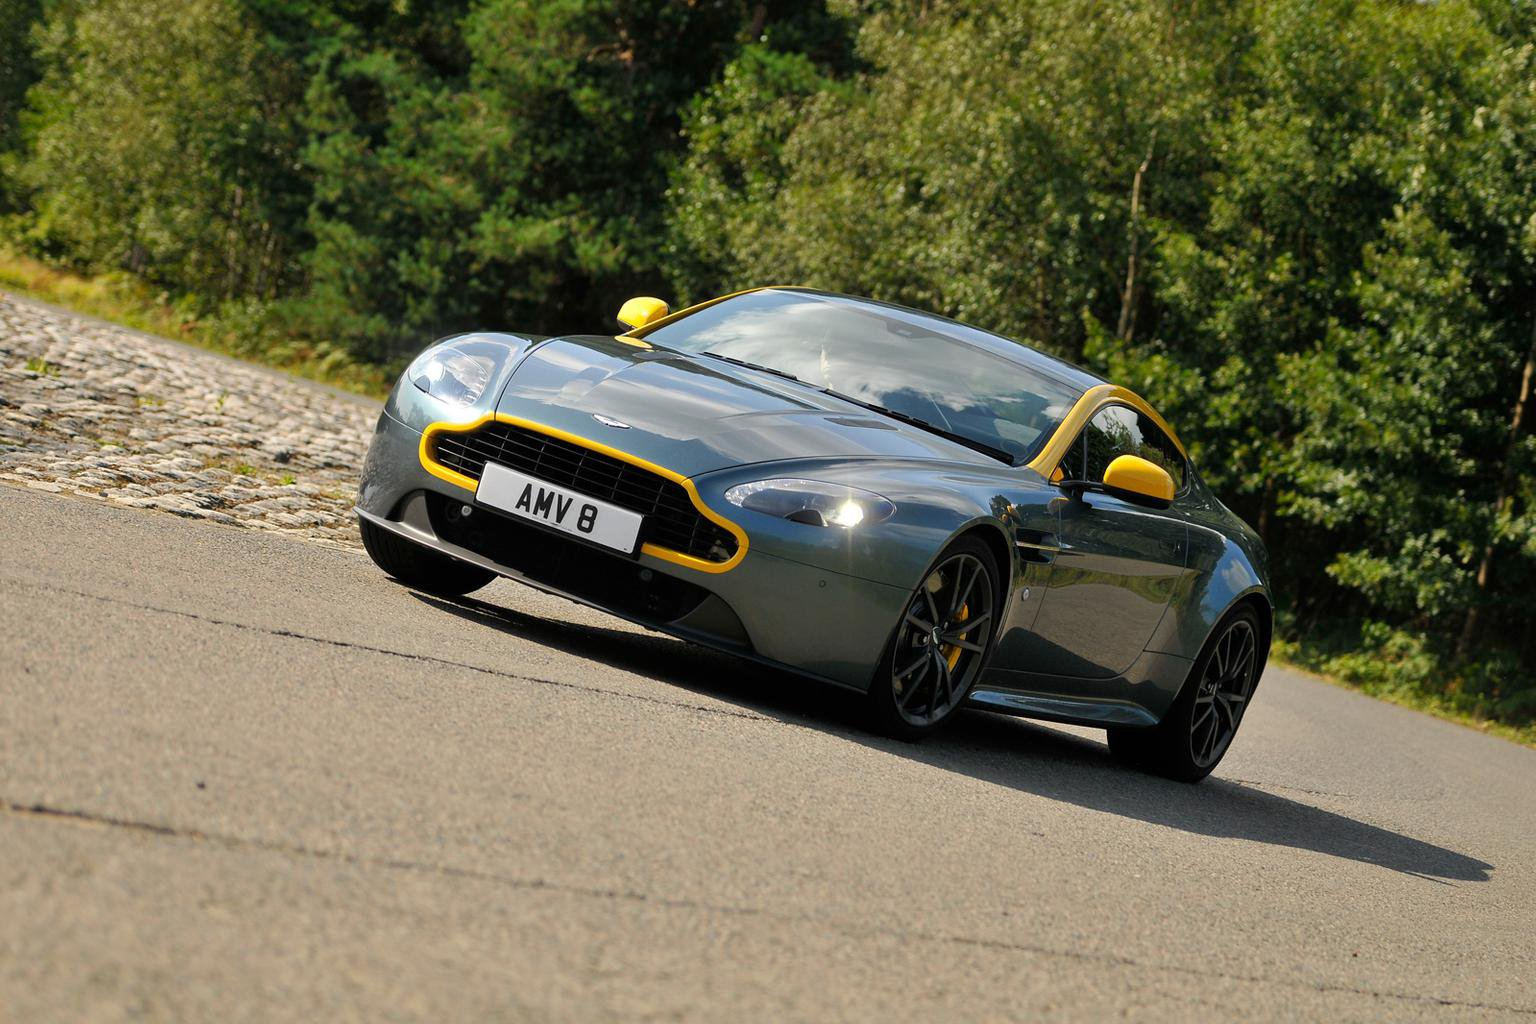 2014 Aston Martin V8 Vantage N430 review